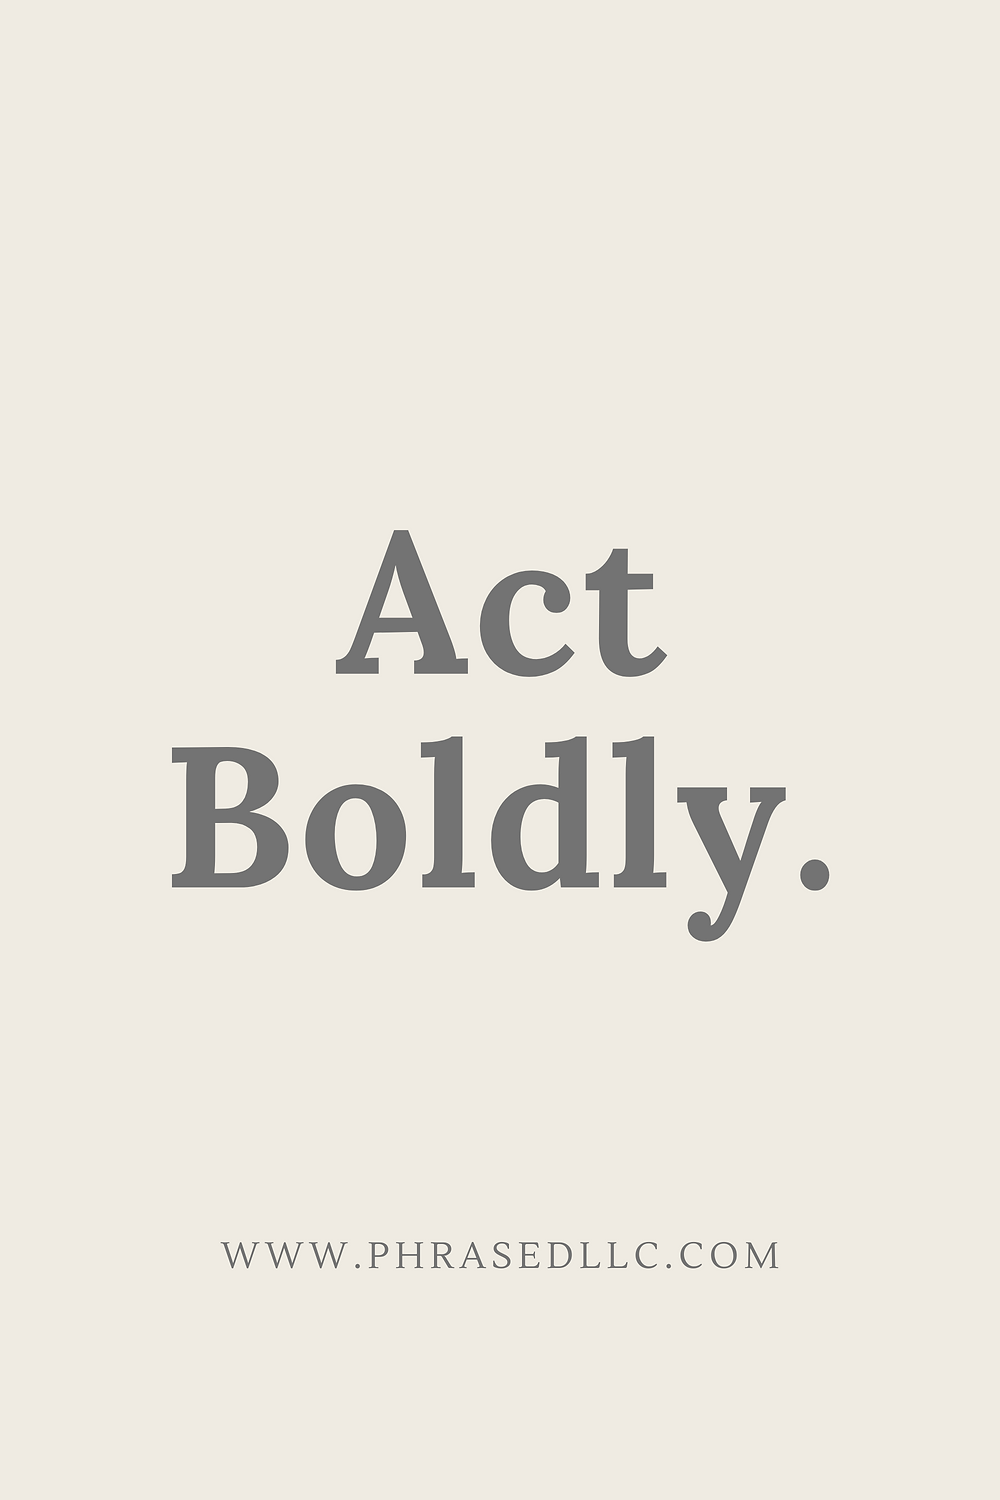 Short inspirational quote on acting boldly.